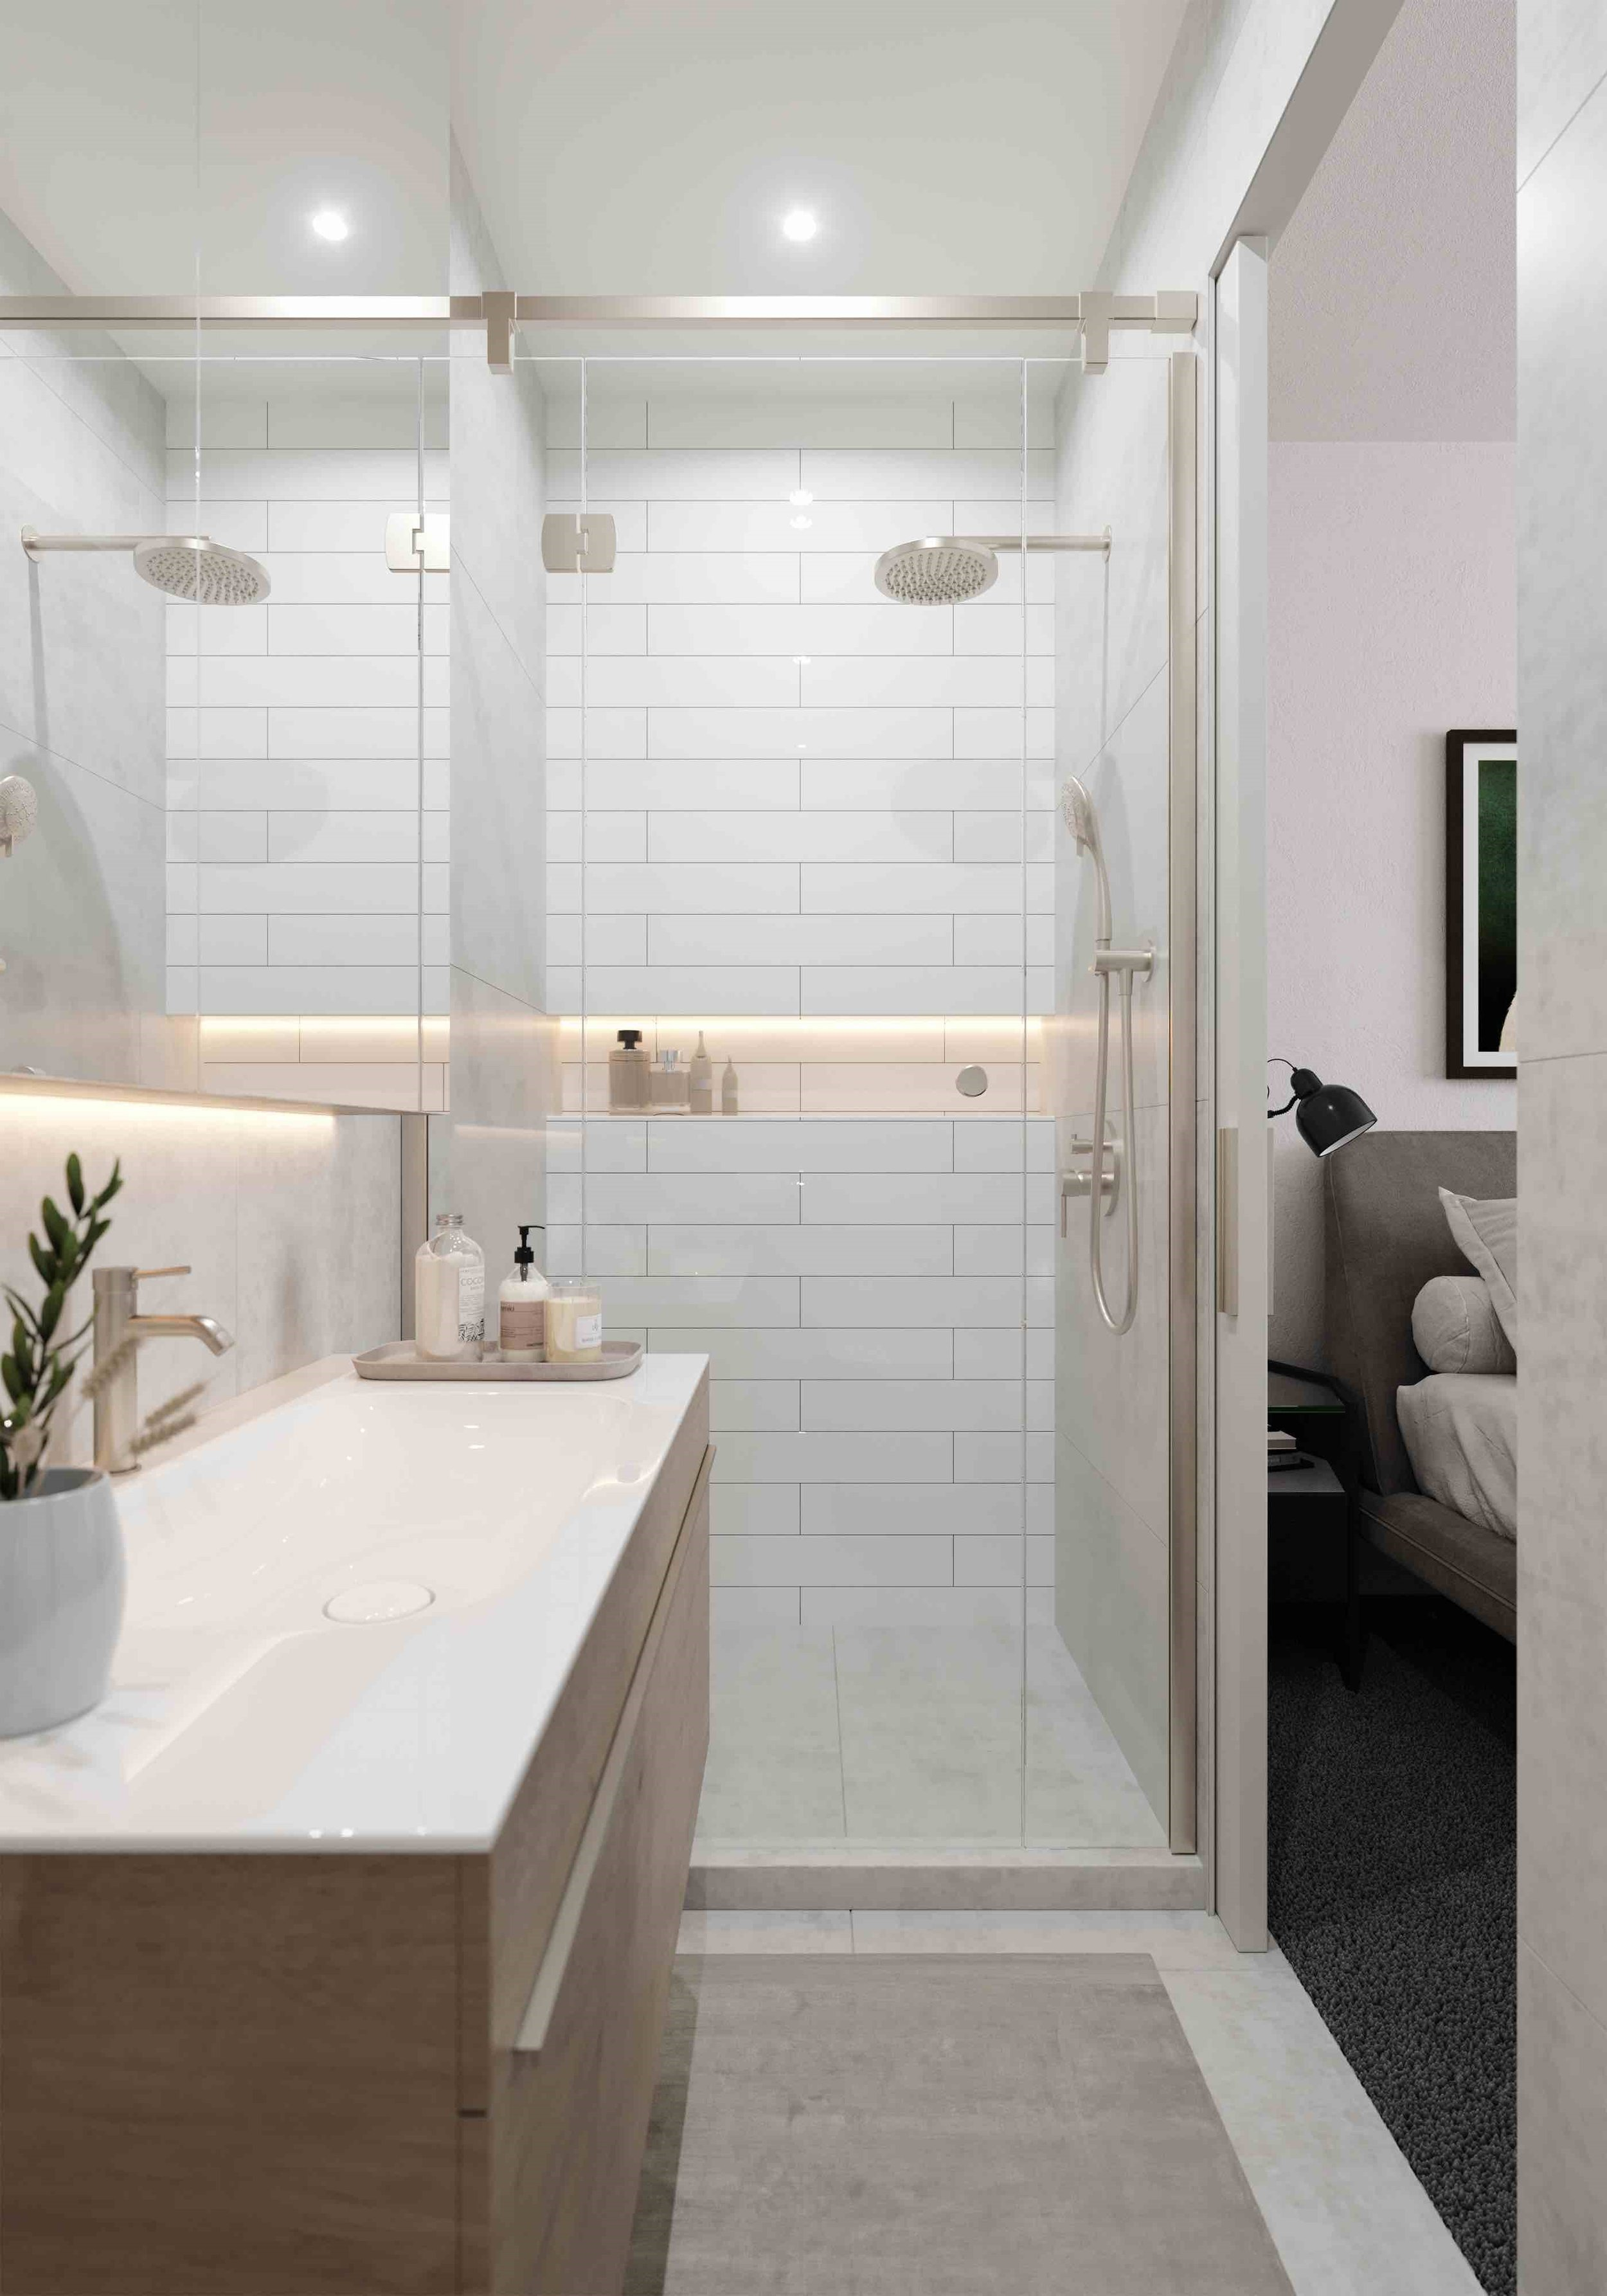 3. Interior Bathroom - Copy.jpg